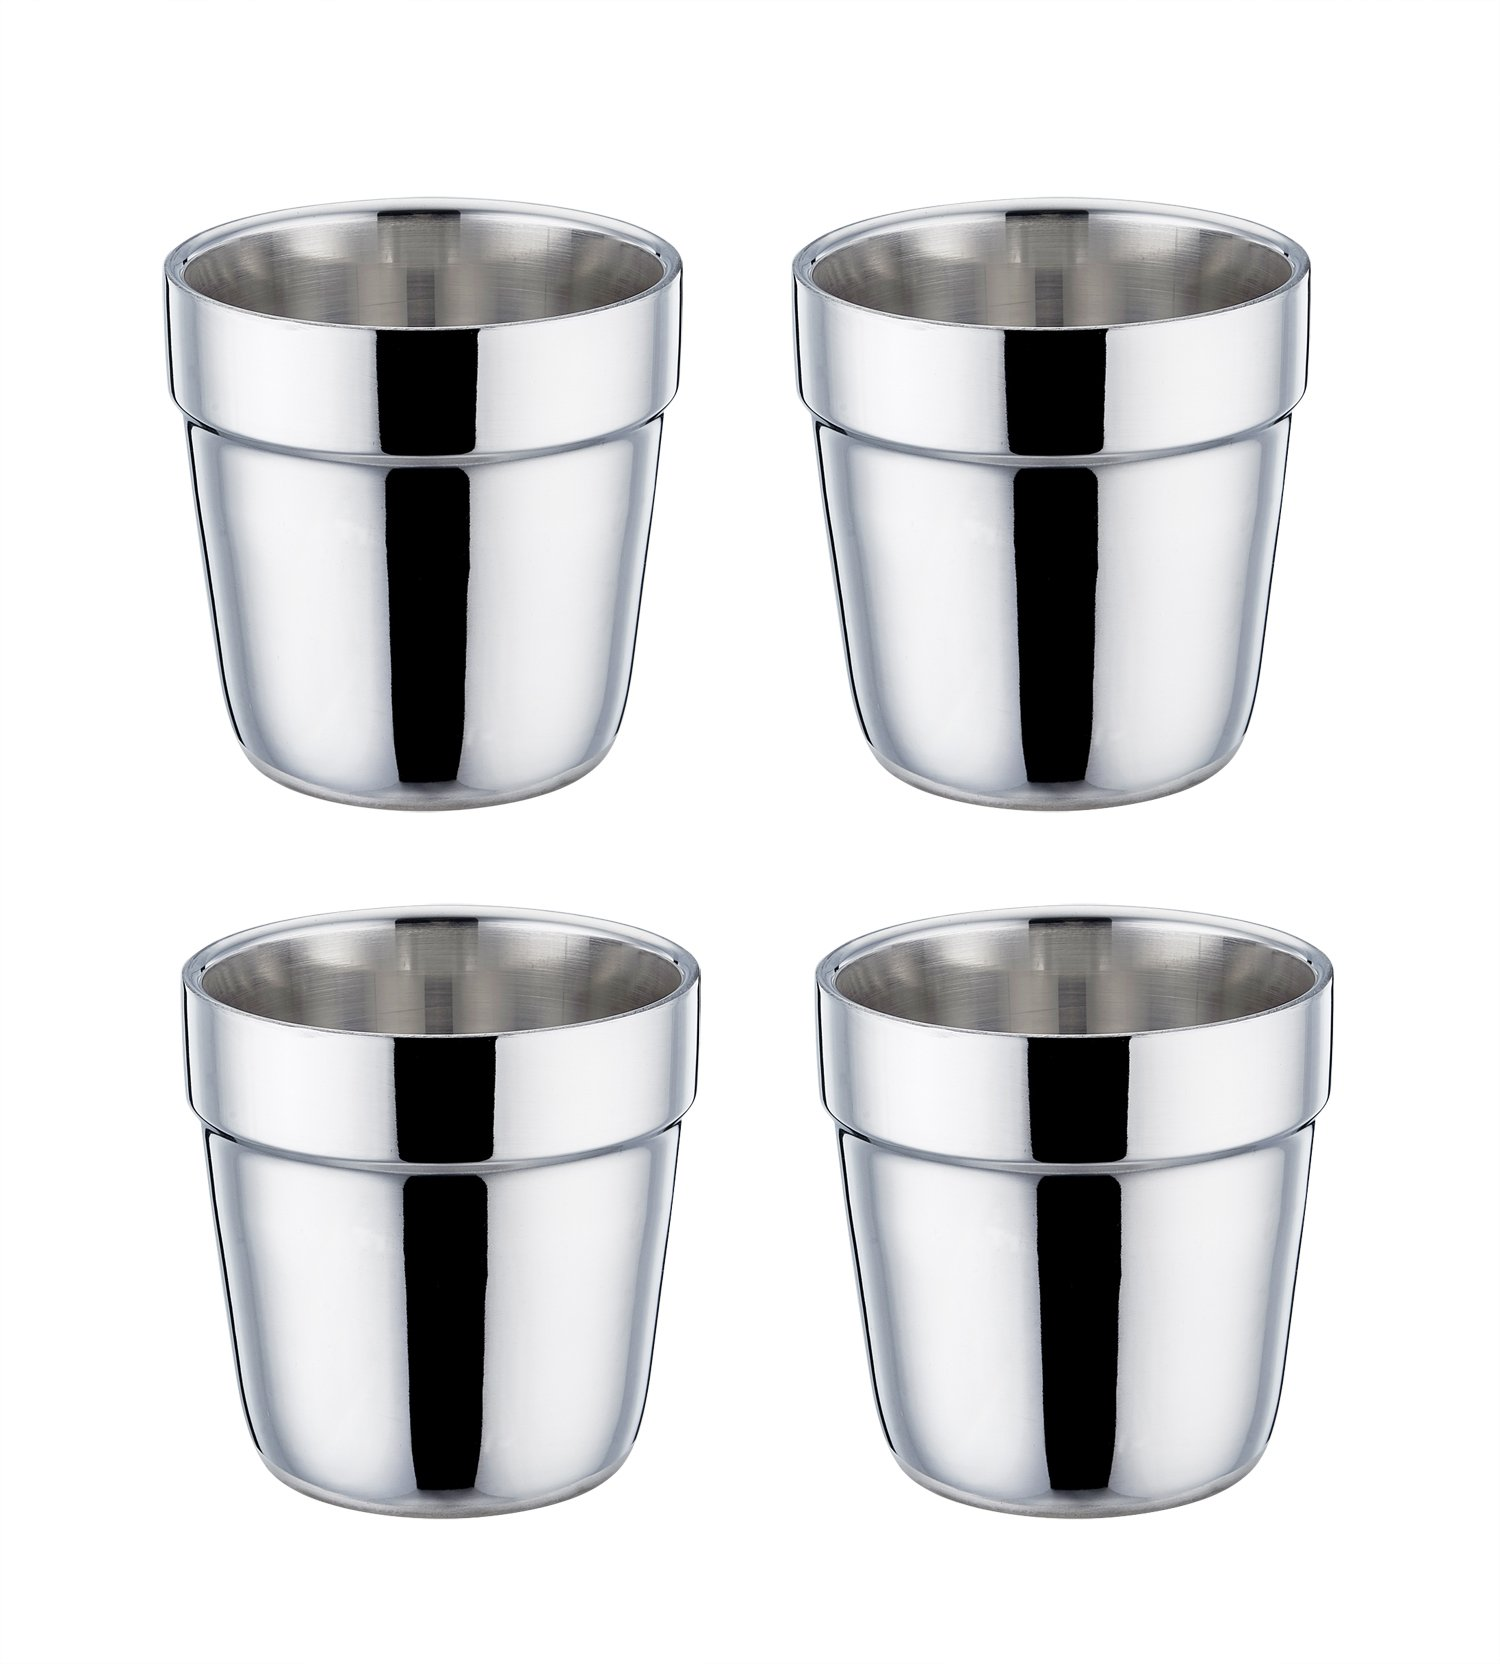 TeamFar Coffee Cup Espresso Cup Mug Set of 4, Double Wall Stainless Steel Tea Cups, Reusable & Stackable, Mirror Finish & Dishwasher Safe - 6 Ounce by TeamFar